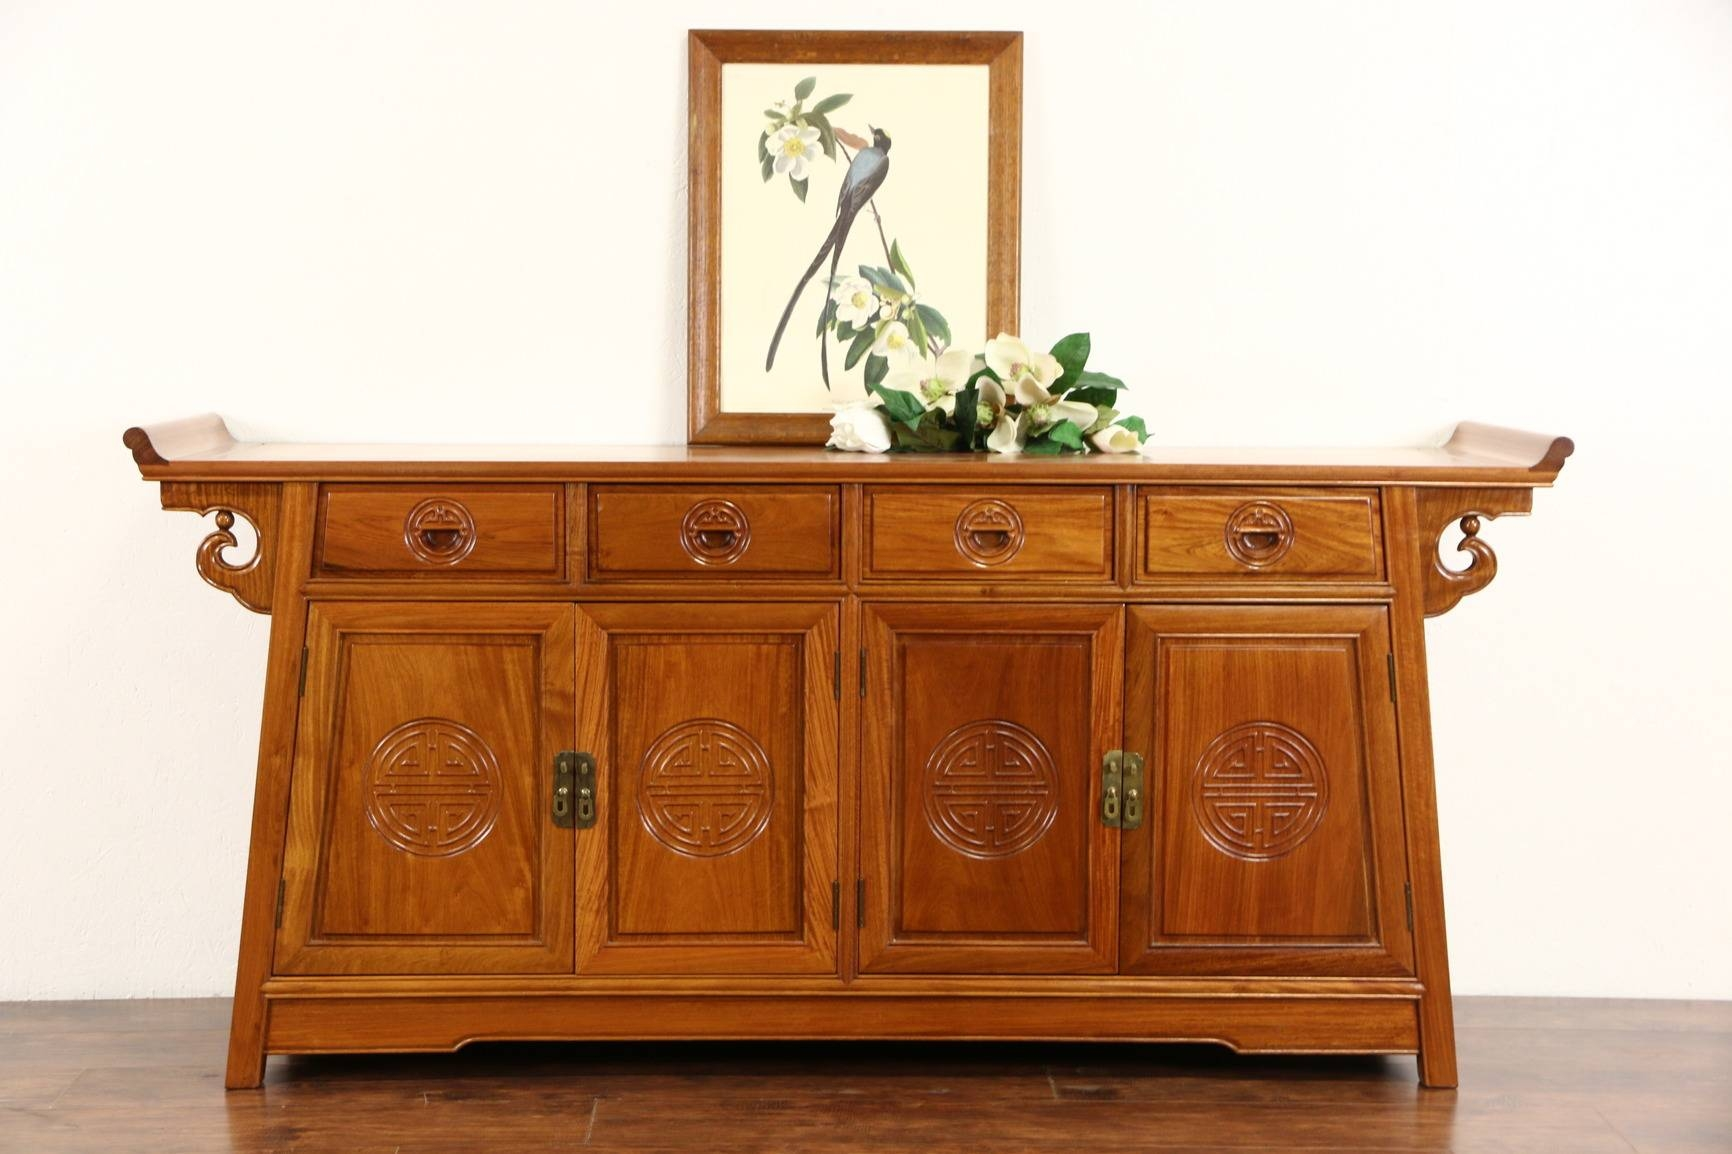 Sold - Asian Vintage Hand Carved Rosewood Sideboard Server Or pertaining to Asian Sideboards (Image 24 of 30)